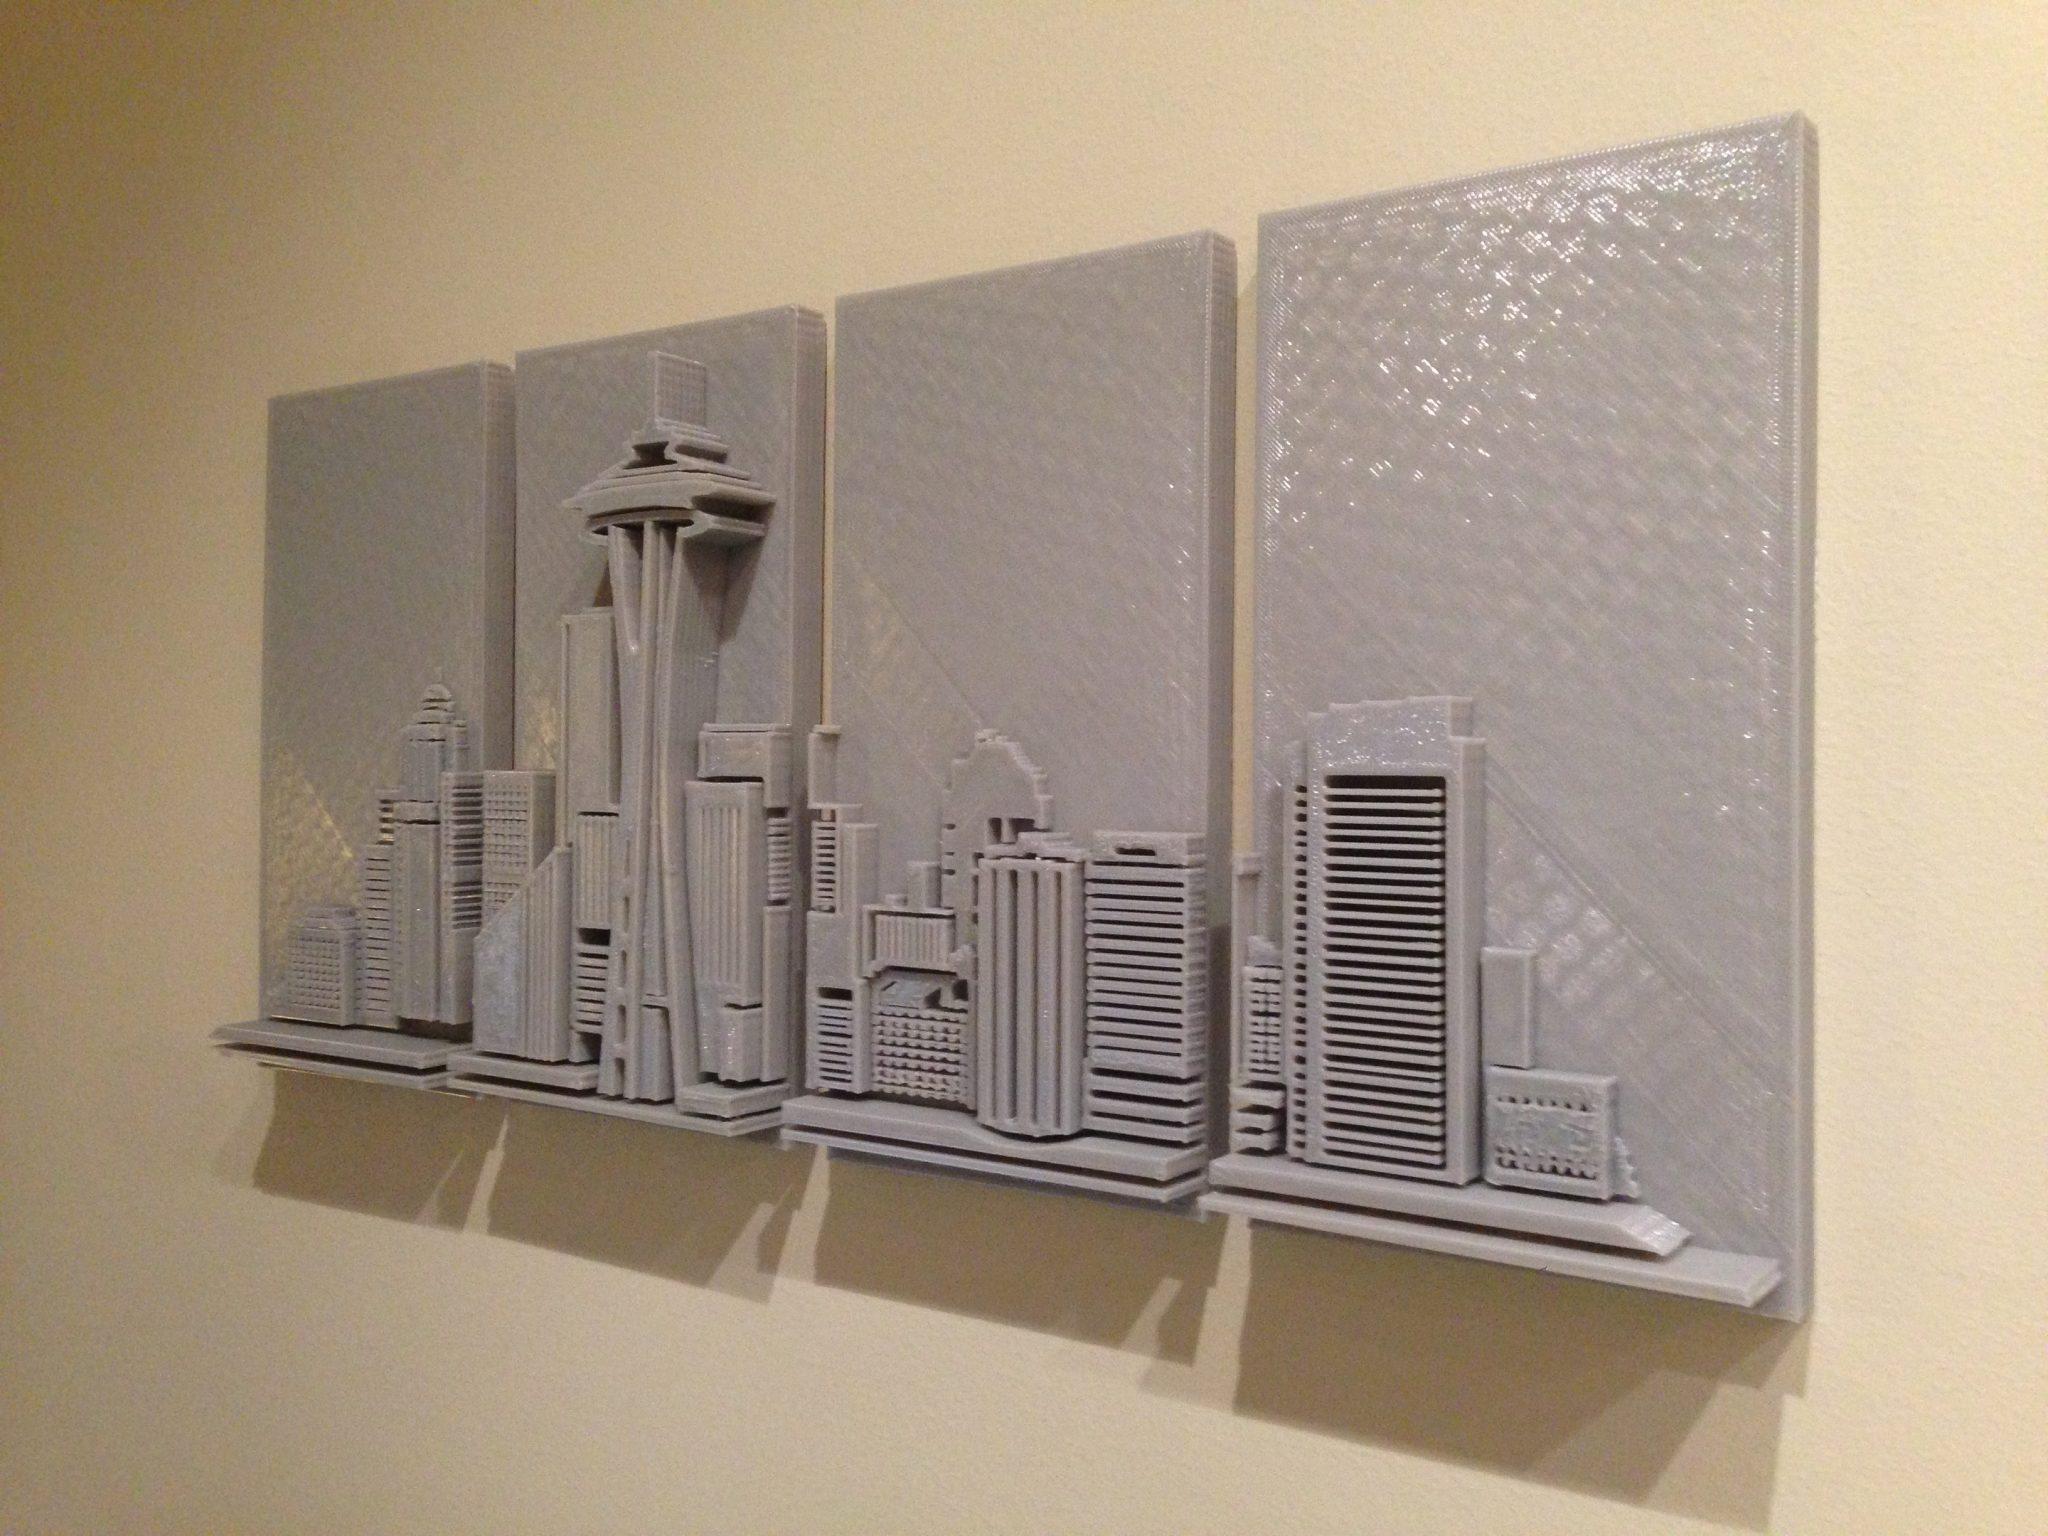 3D Wall Art For Sale | Home Decor Ideas Regarding 3D Printed Wall Art (Image 11 of 20)